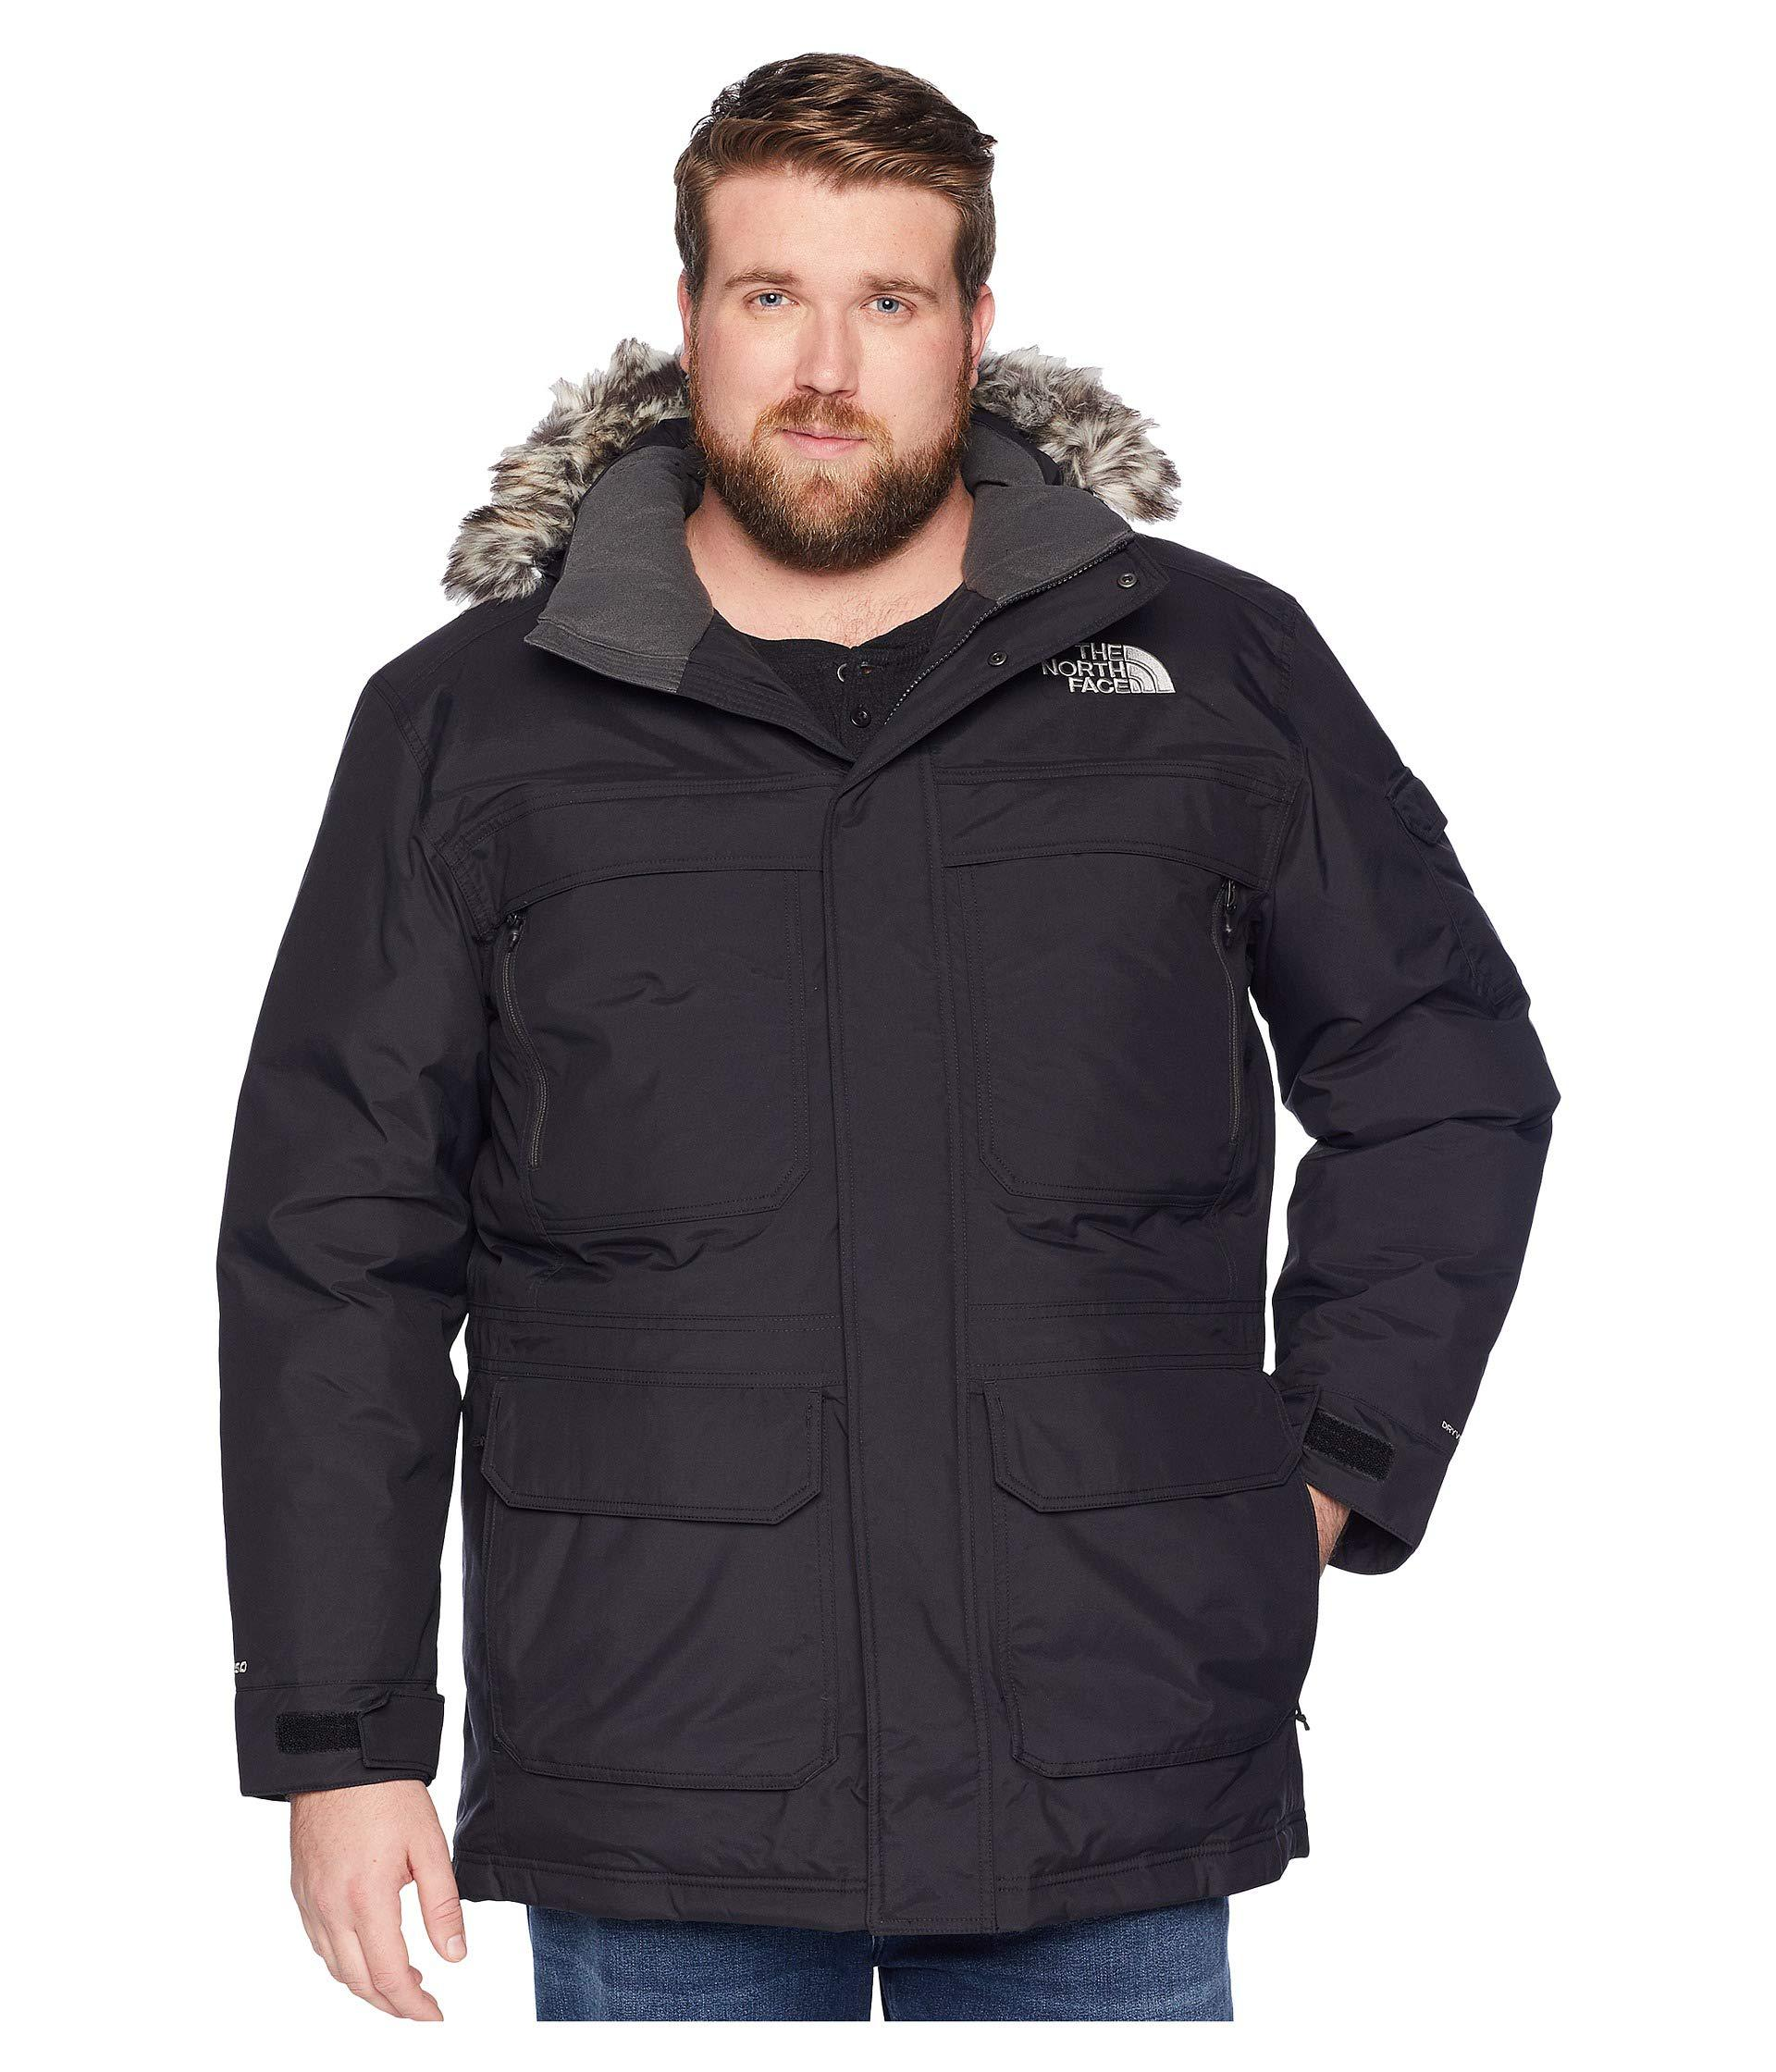 a7f22a6b87 Lyst - The North Face Big Tall Mcmurdo Parka Iii (tnf Black) Men s ...